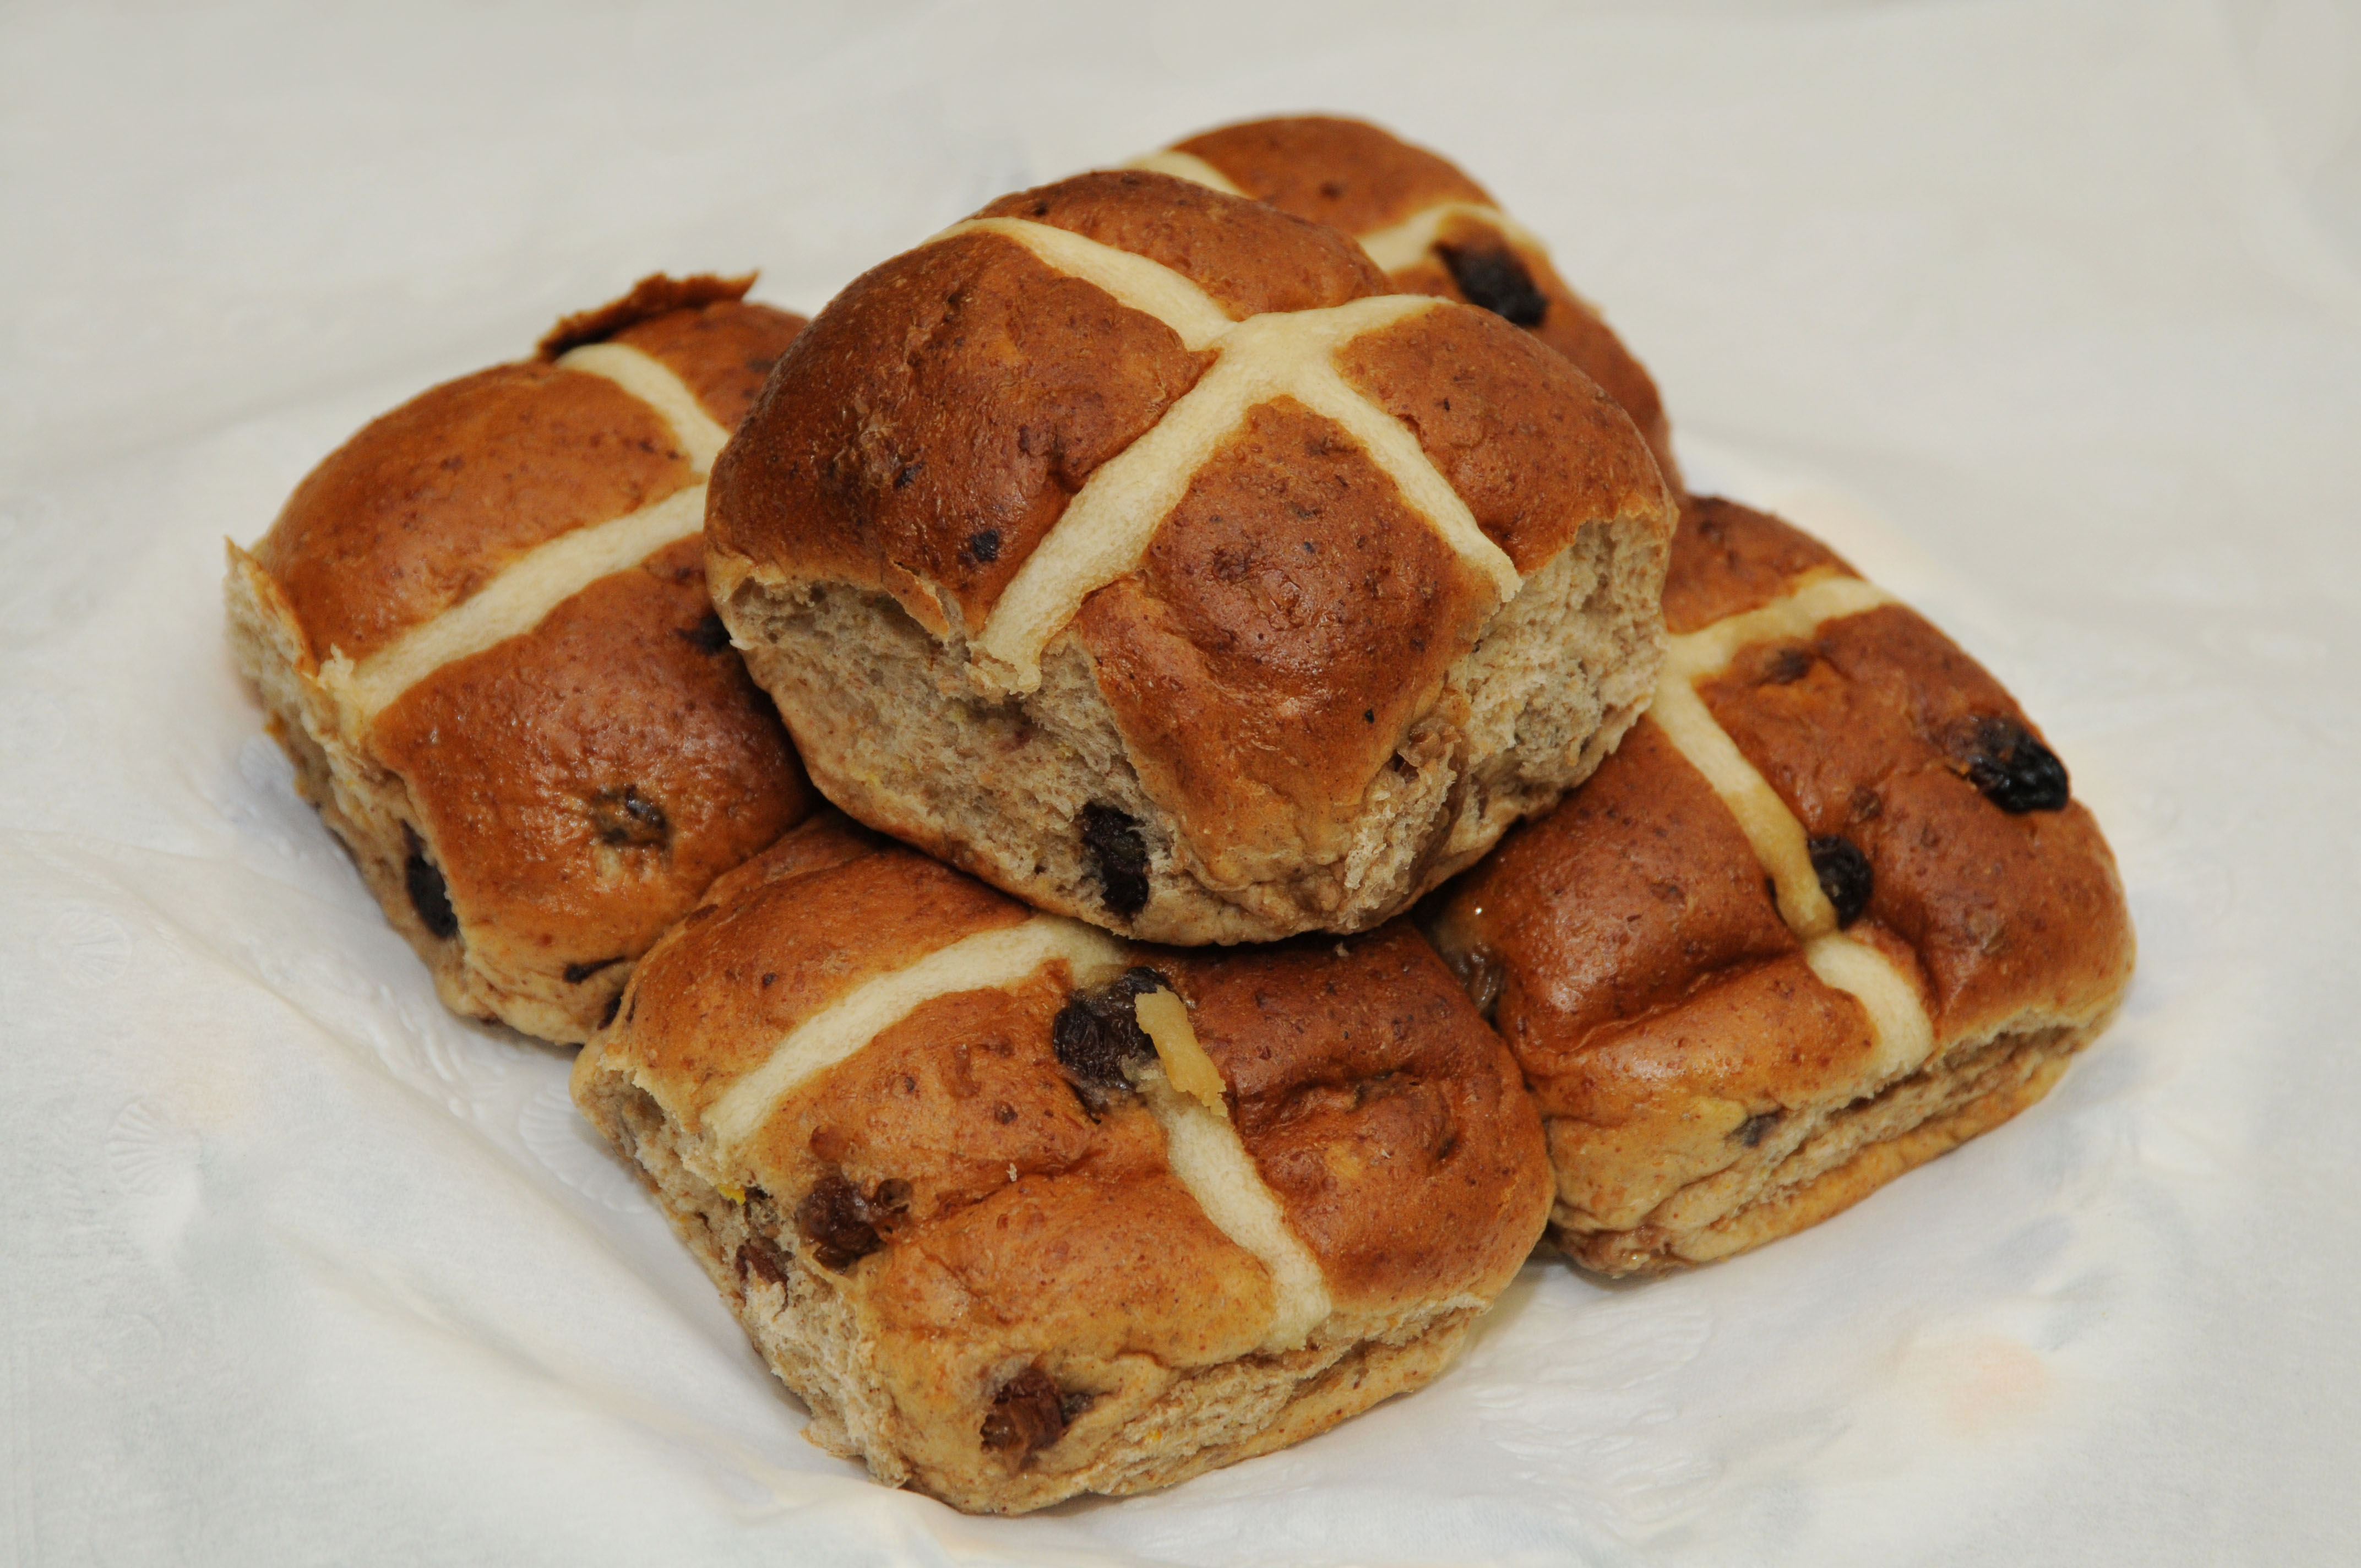 Happy Easter from London! - Hot cross buns